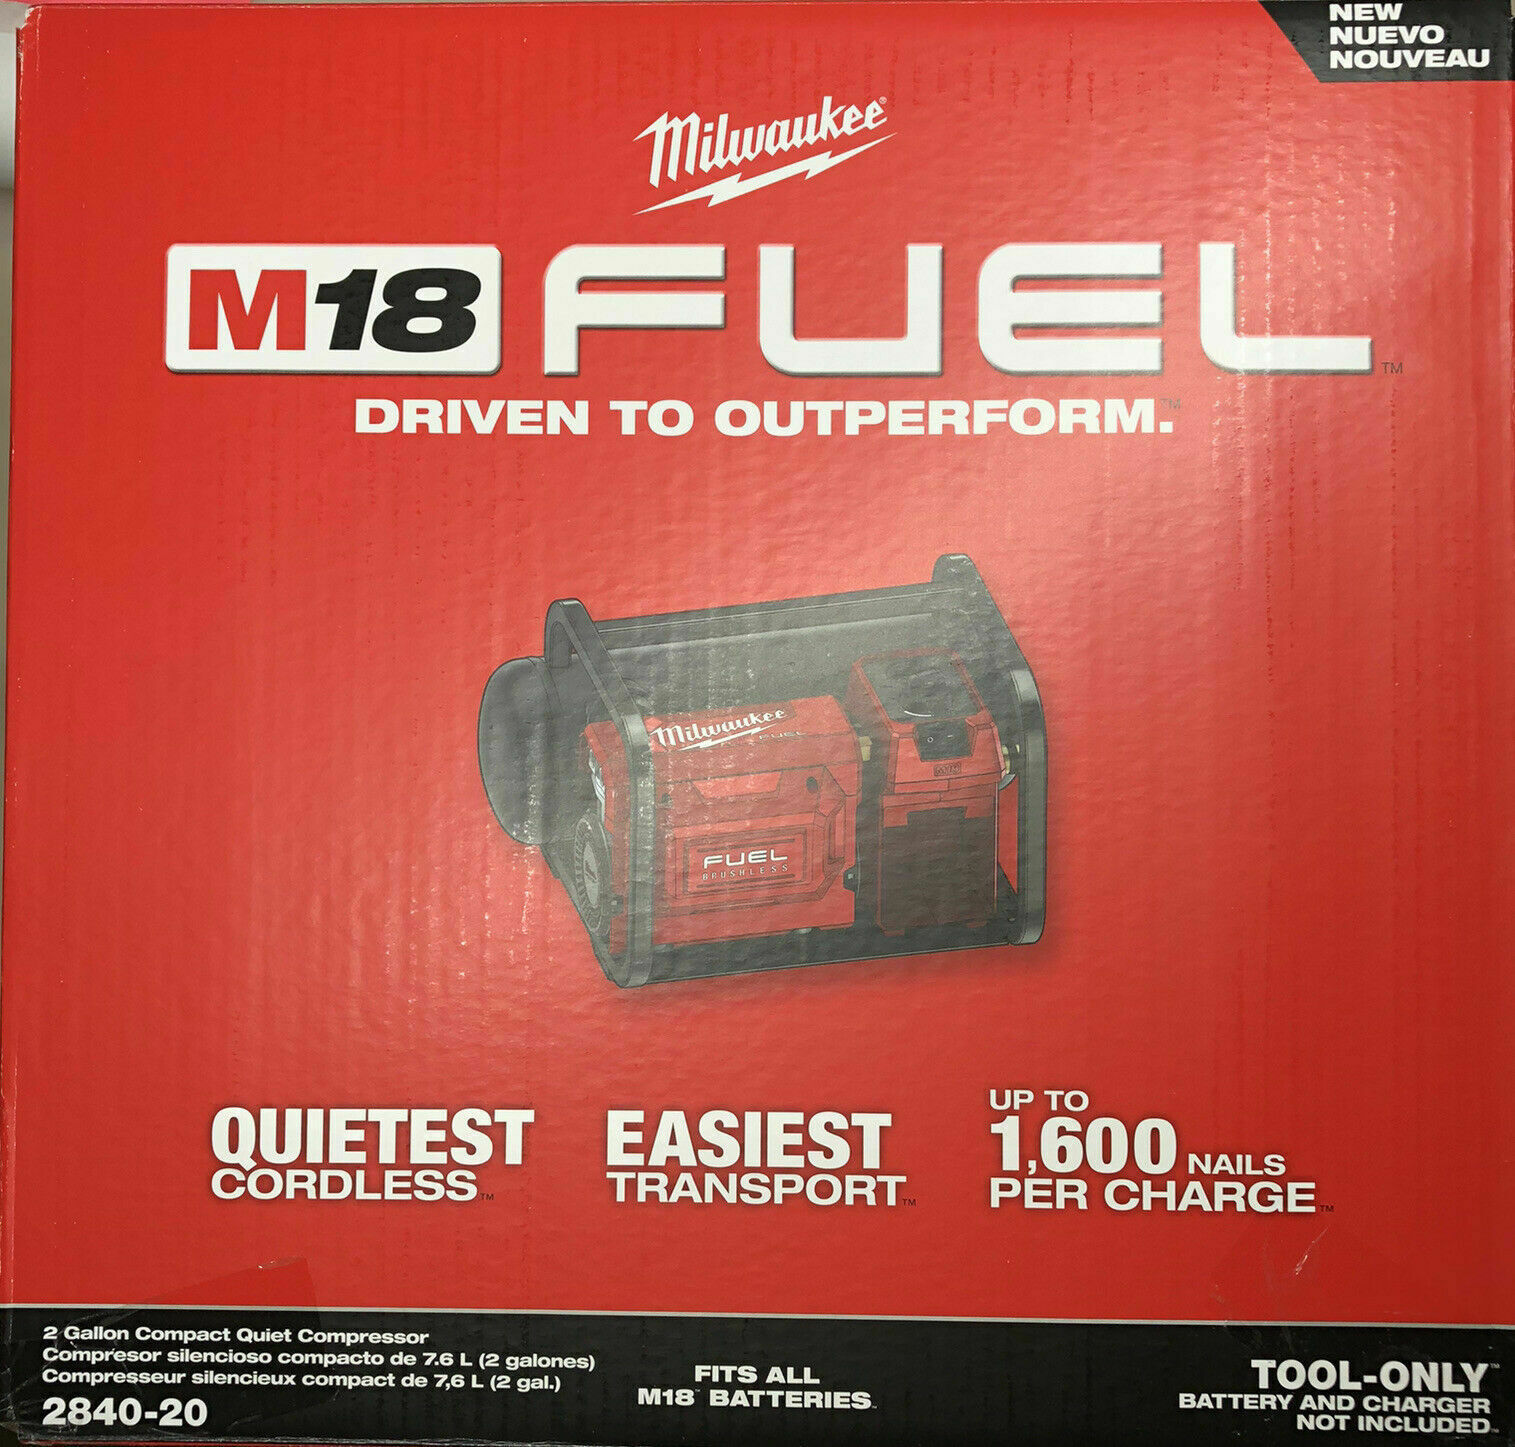 Milwaukee 2840-20 M18 FUEL 18V Brushless Cordless 2 Gal Compact Quiet Compressor. Buy it now for 328.70